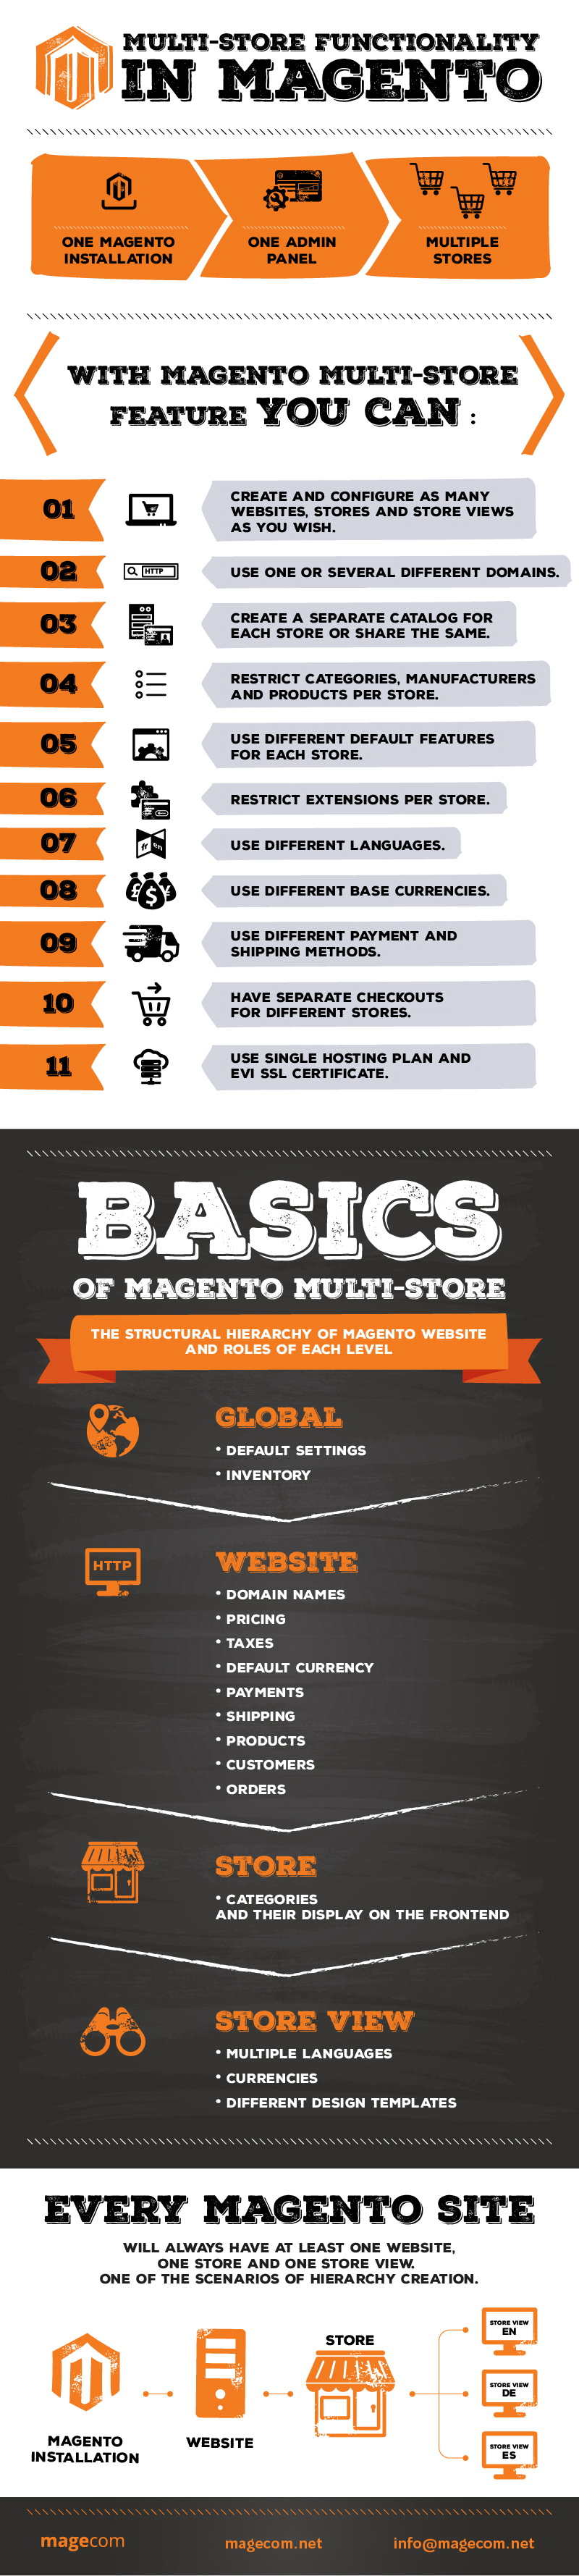 Multi-store functionality in Magento